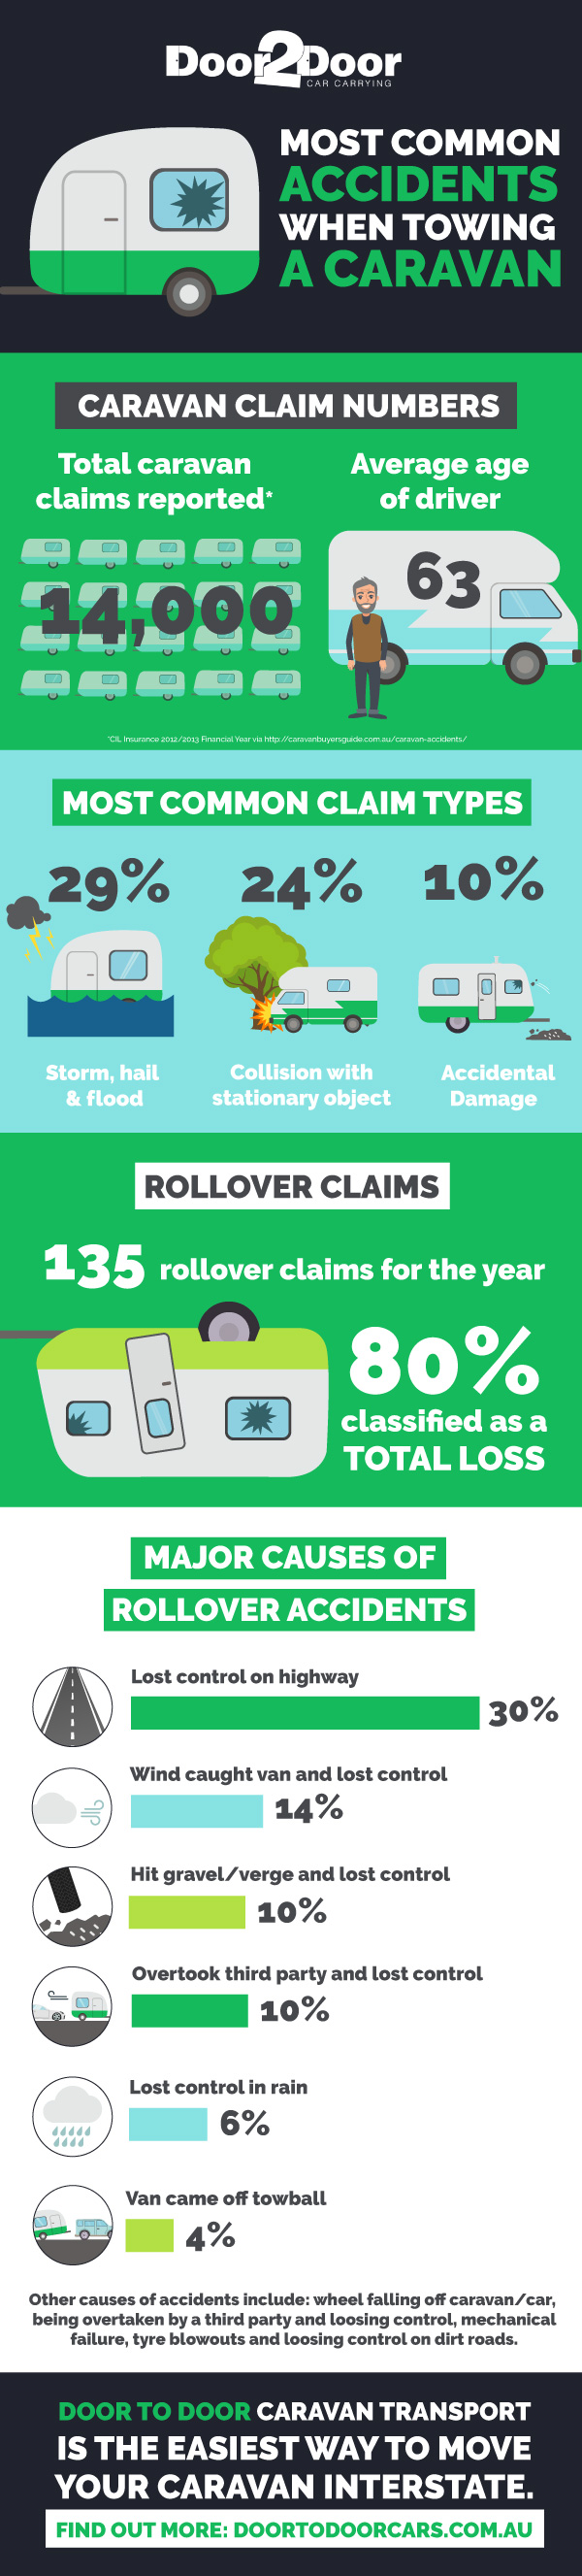 Common accidents when towing a caravan